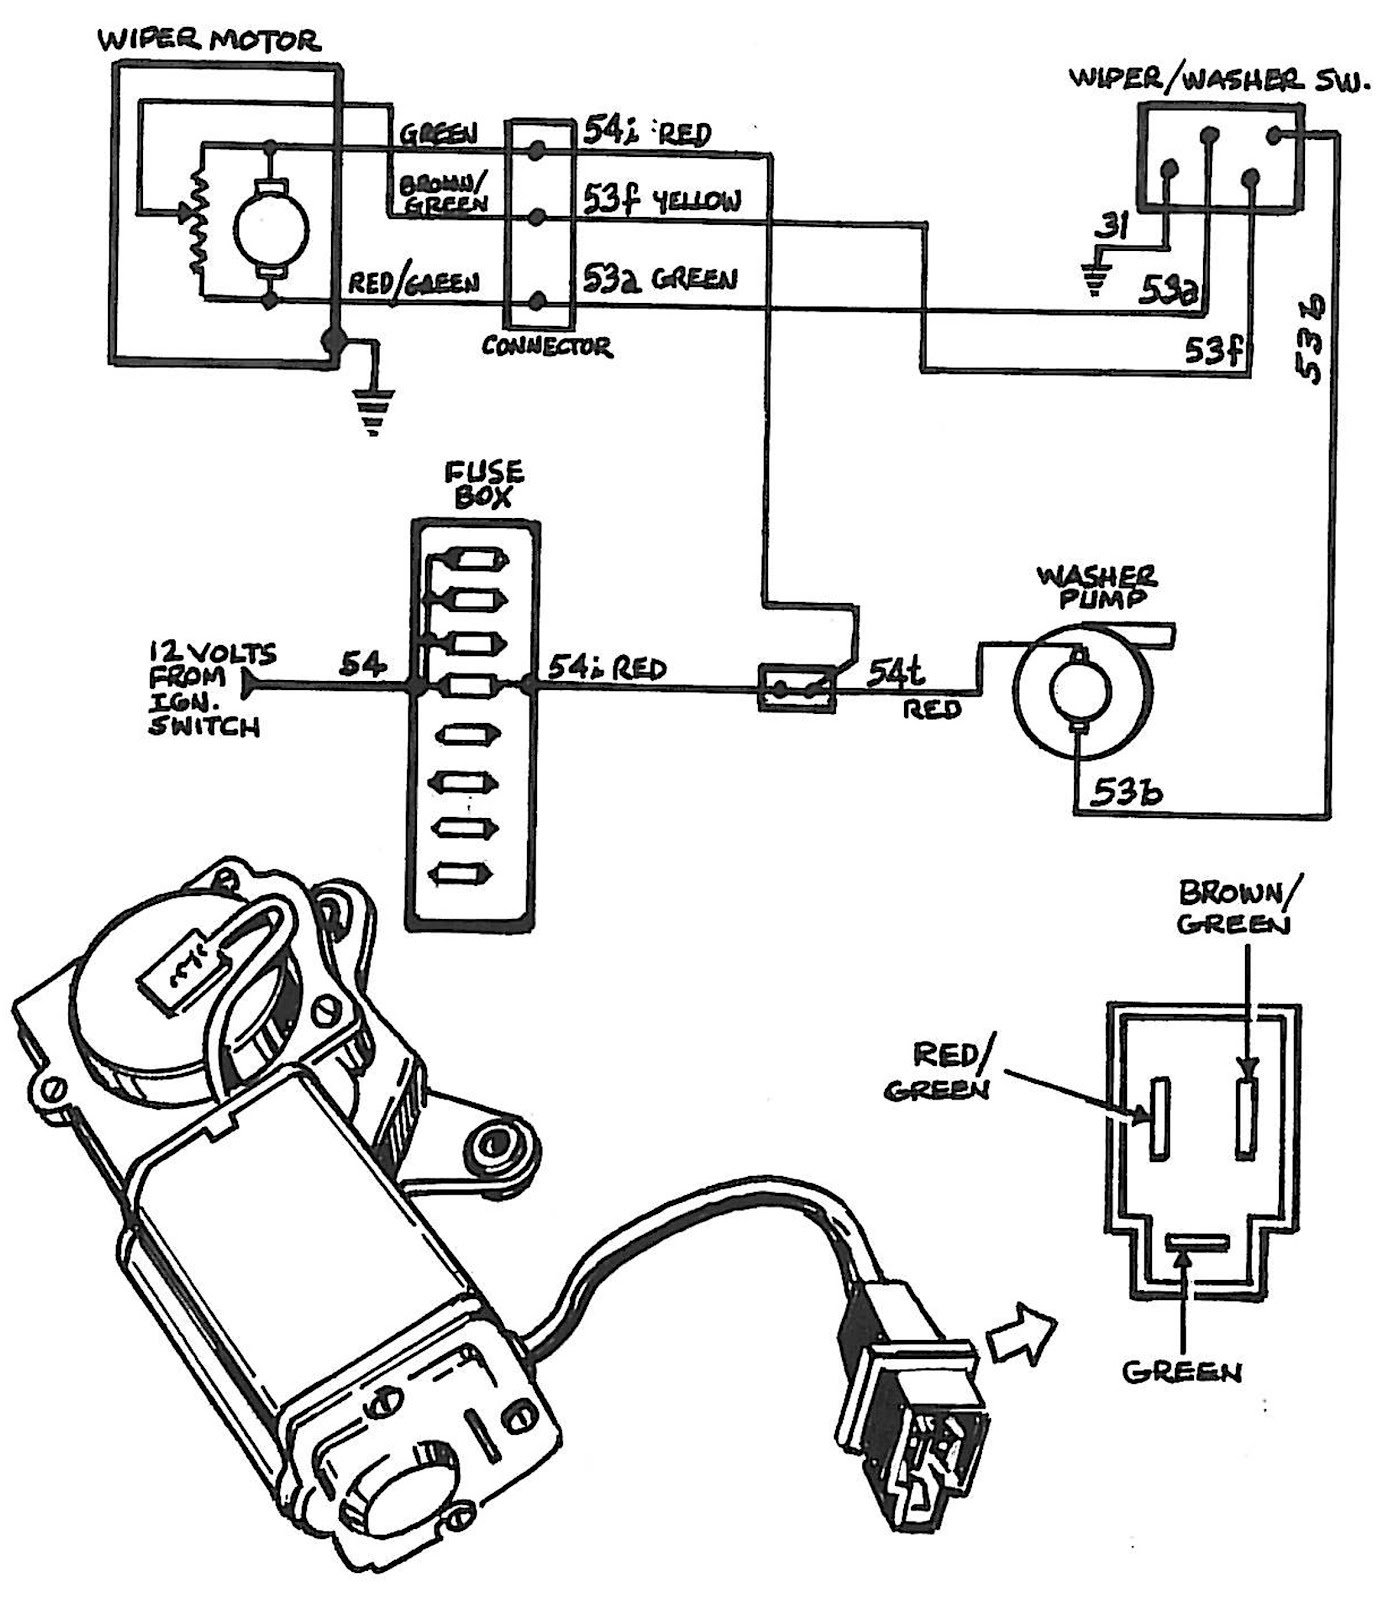 chevy windshield wiper motor wiring diagram CgTTPww vetus wiper motor wiring diagram how does a wiper motor work ongaro wiper motor wiring diagram at reclaimingppi.co